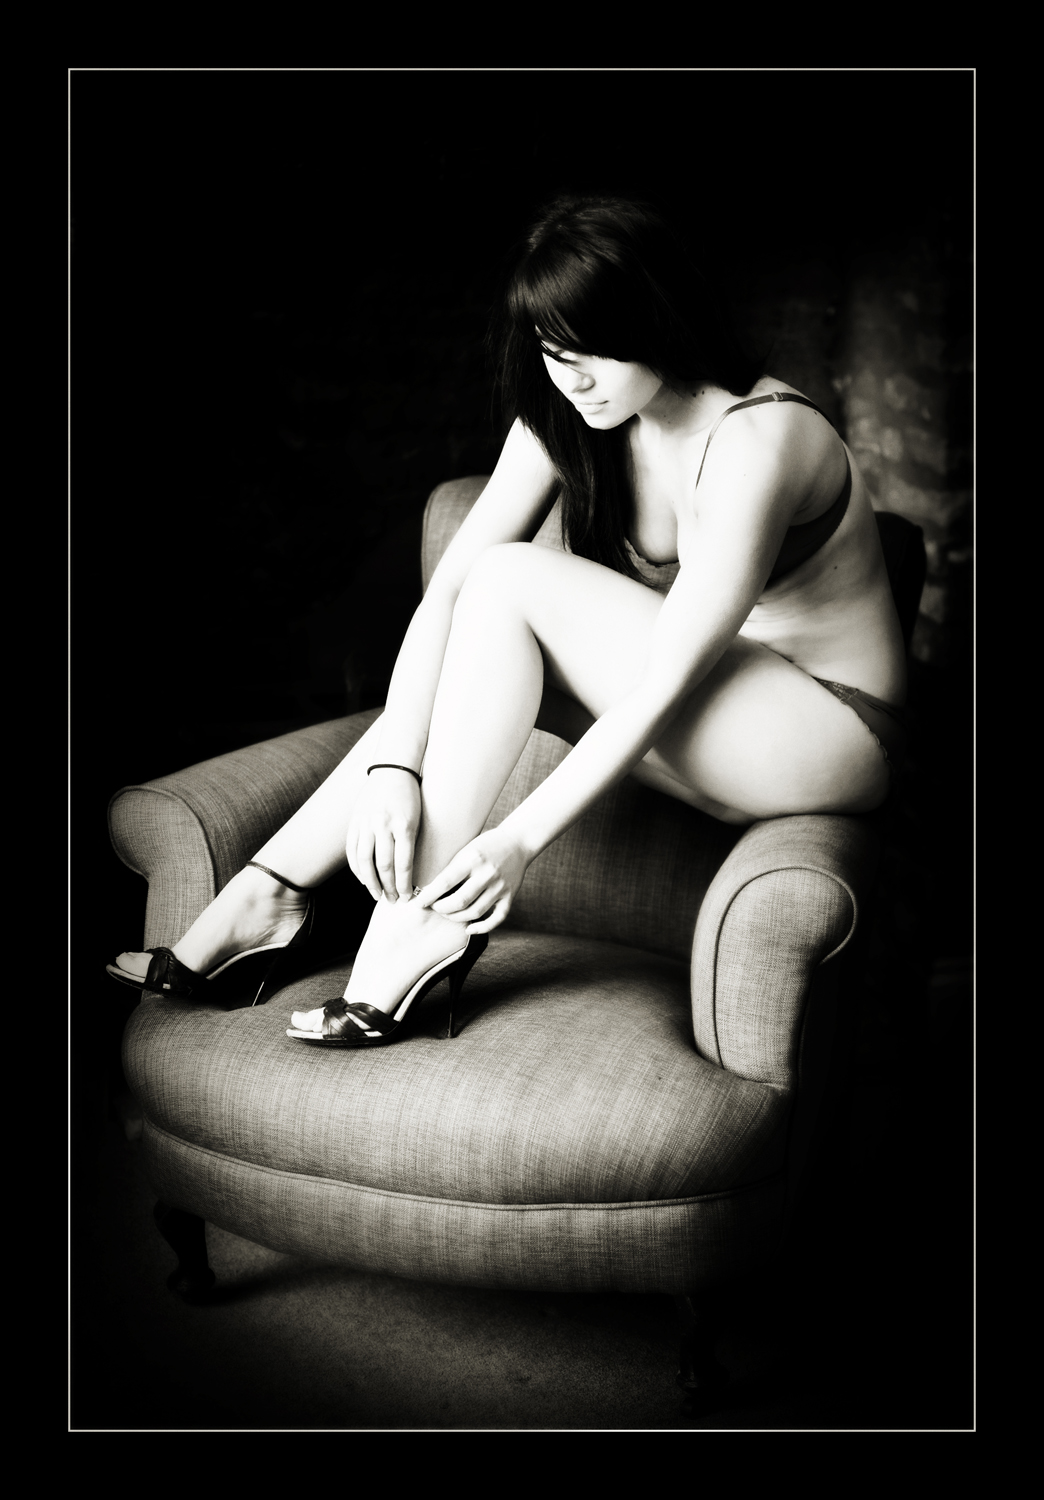 Erotic photography sessions